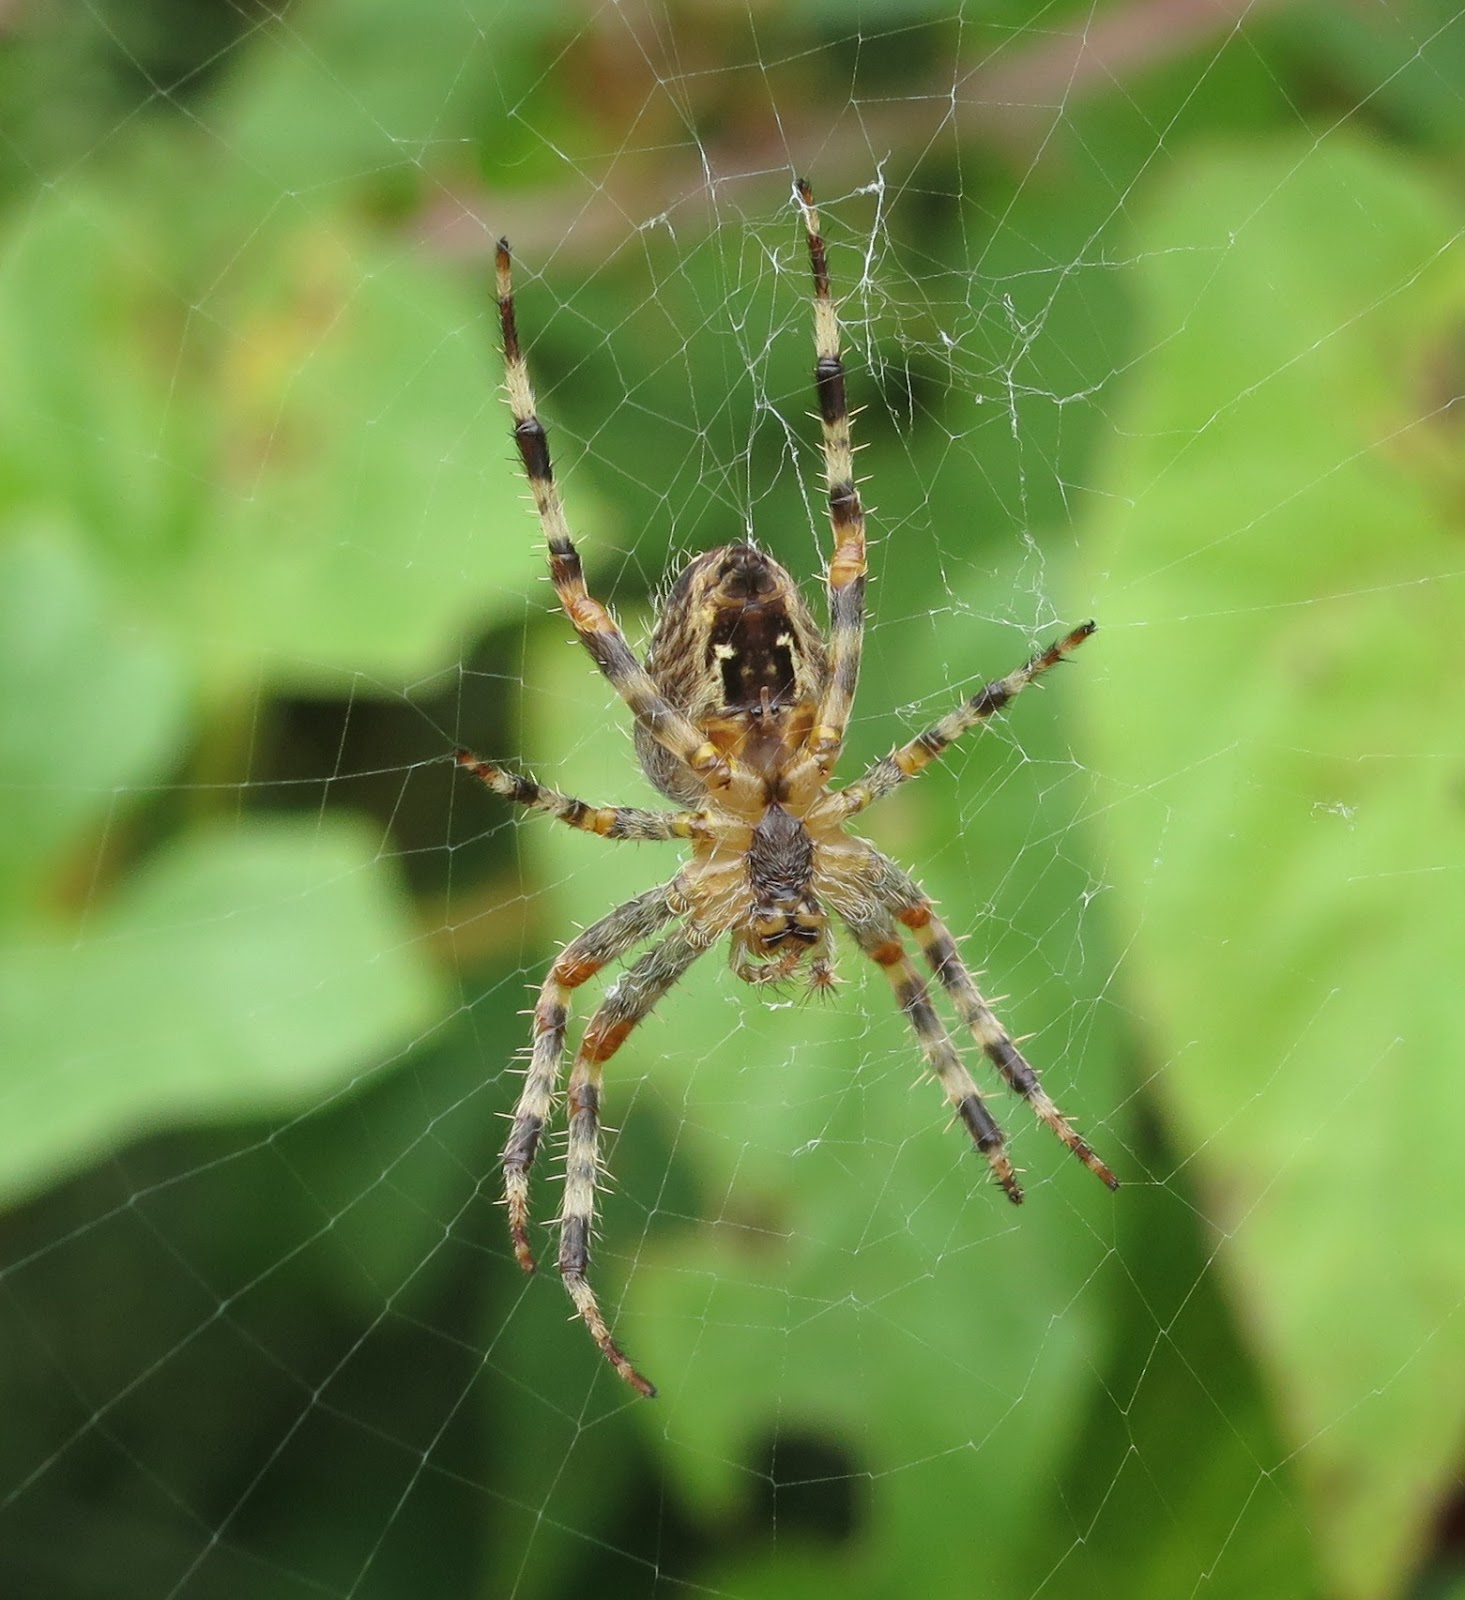 The stripy underside of a spider in its web